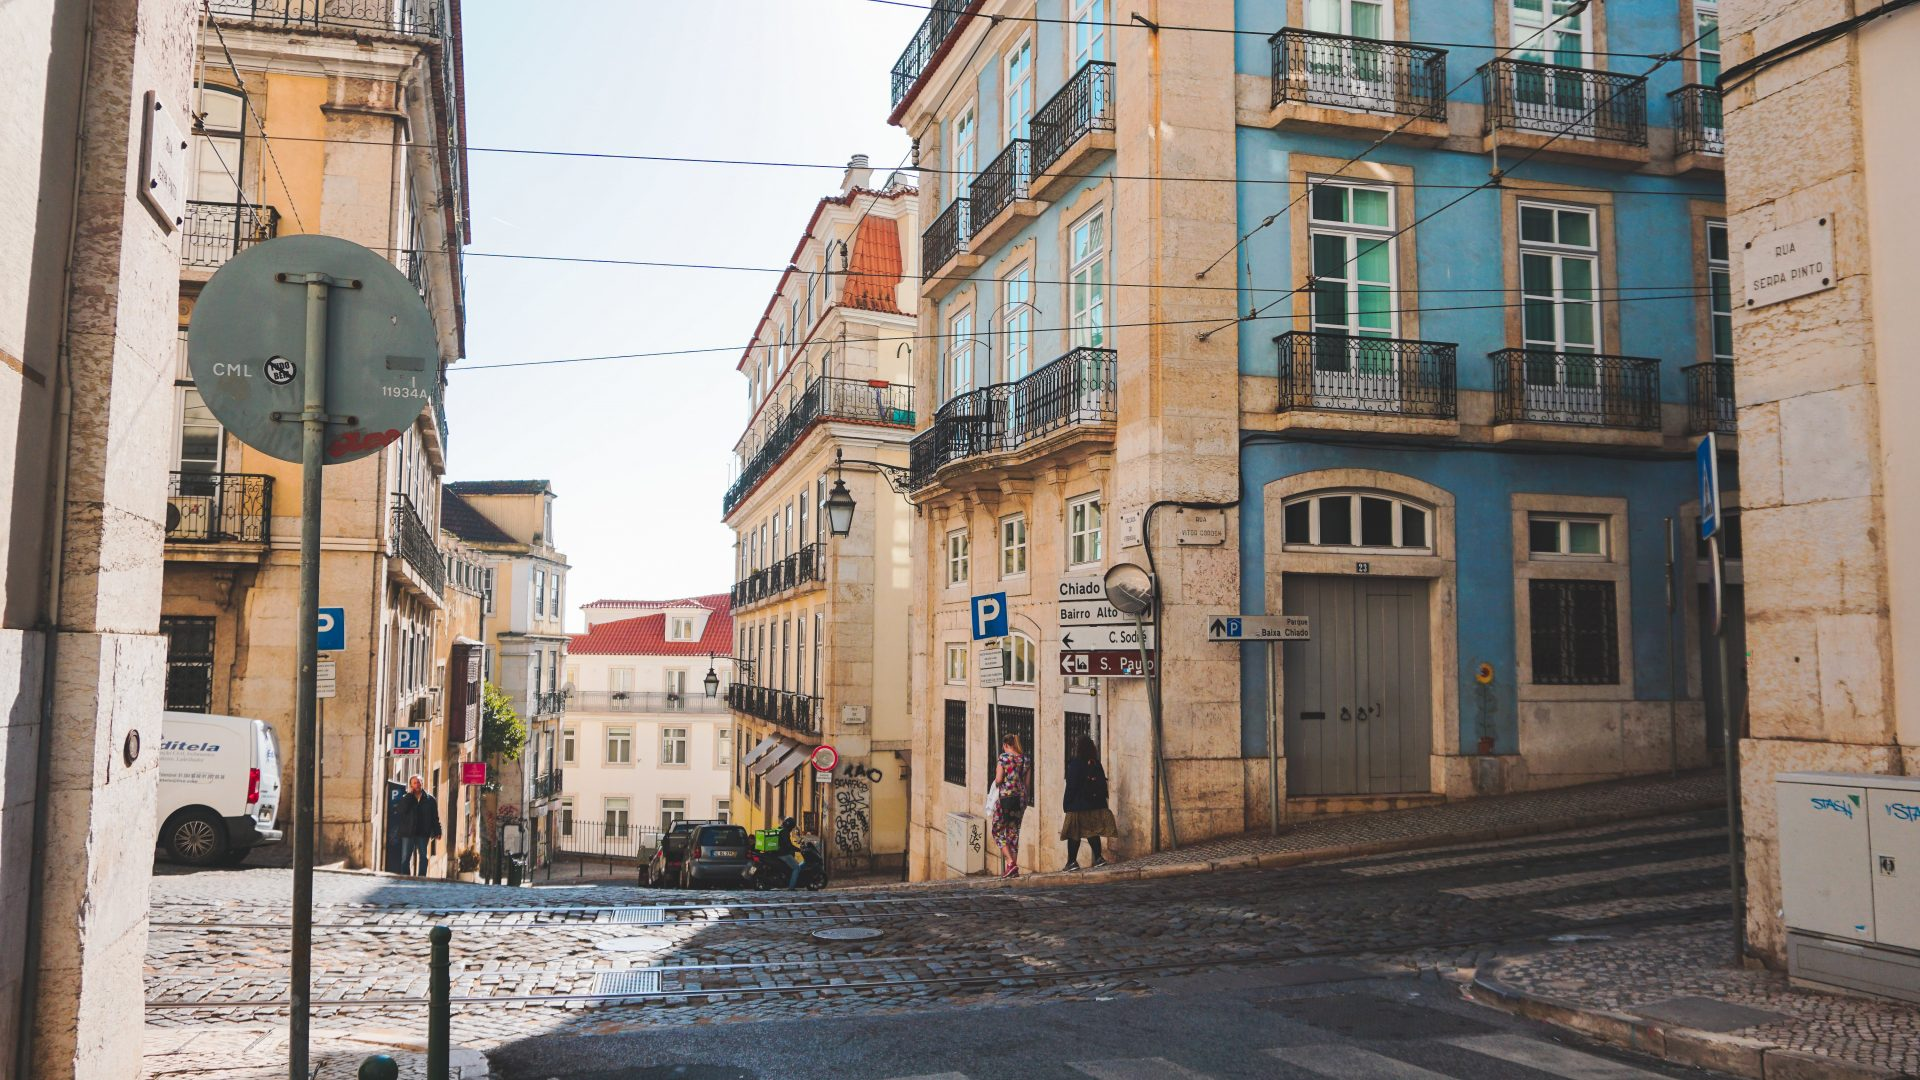 Travelling to Lisbon in November